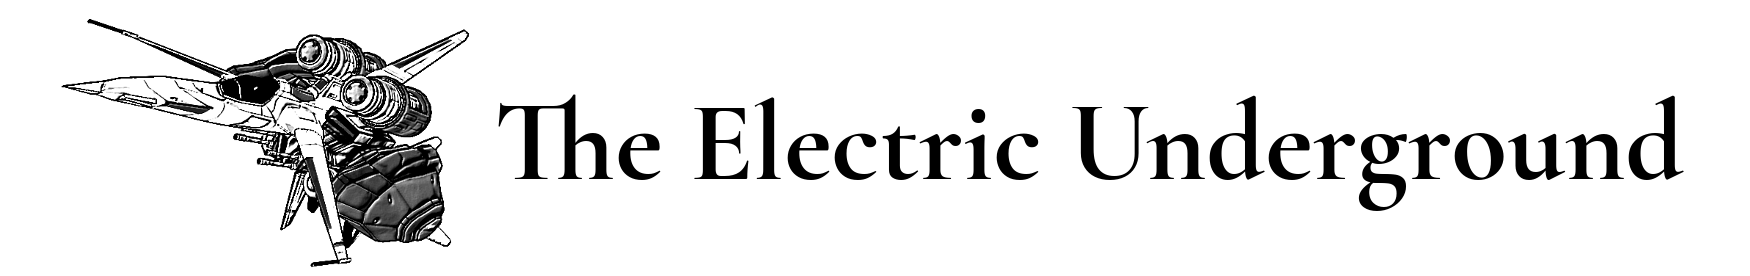 The Electric Underground